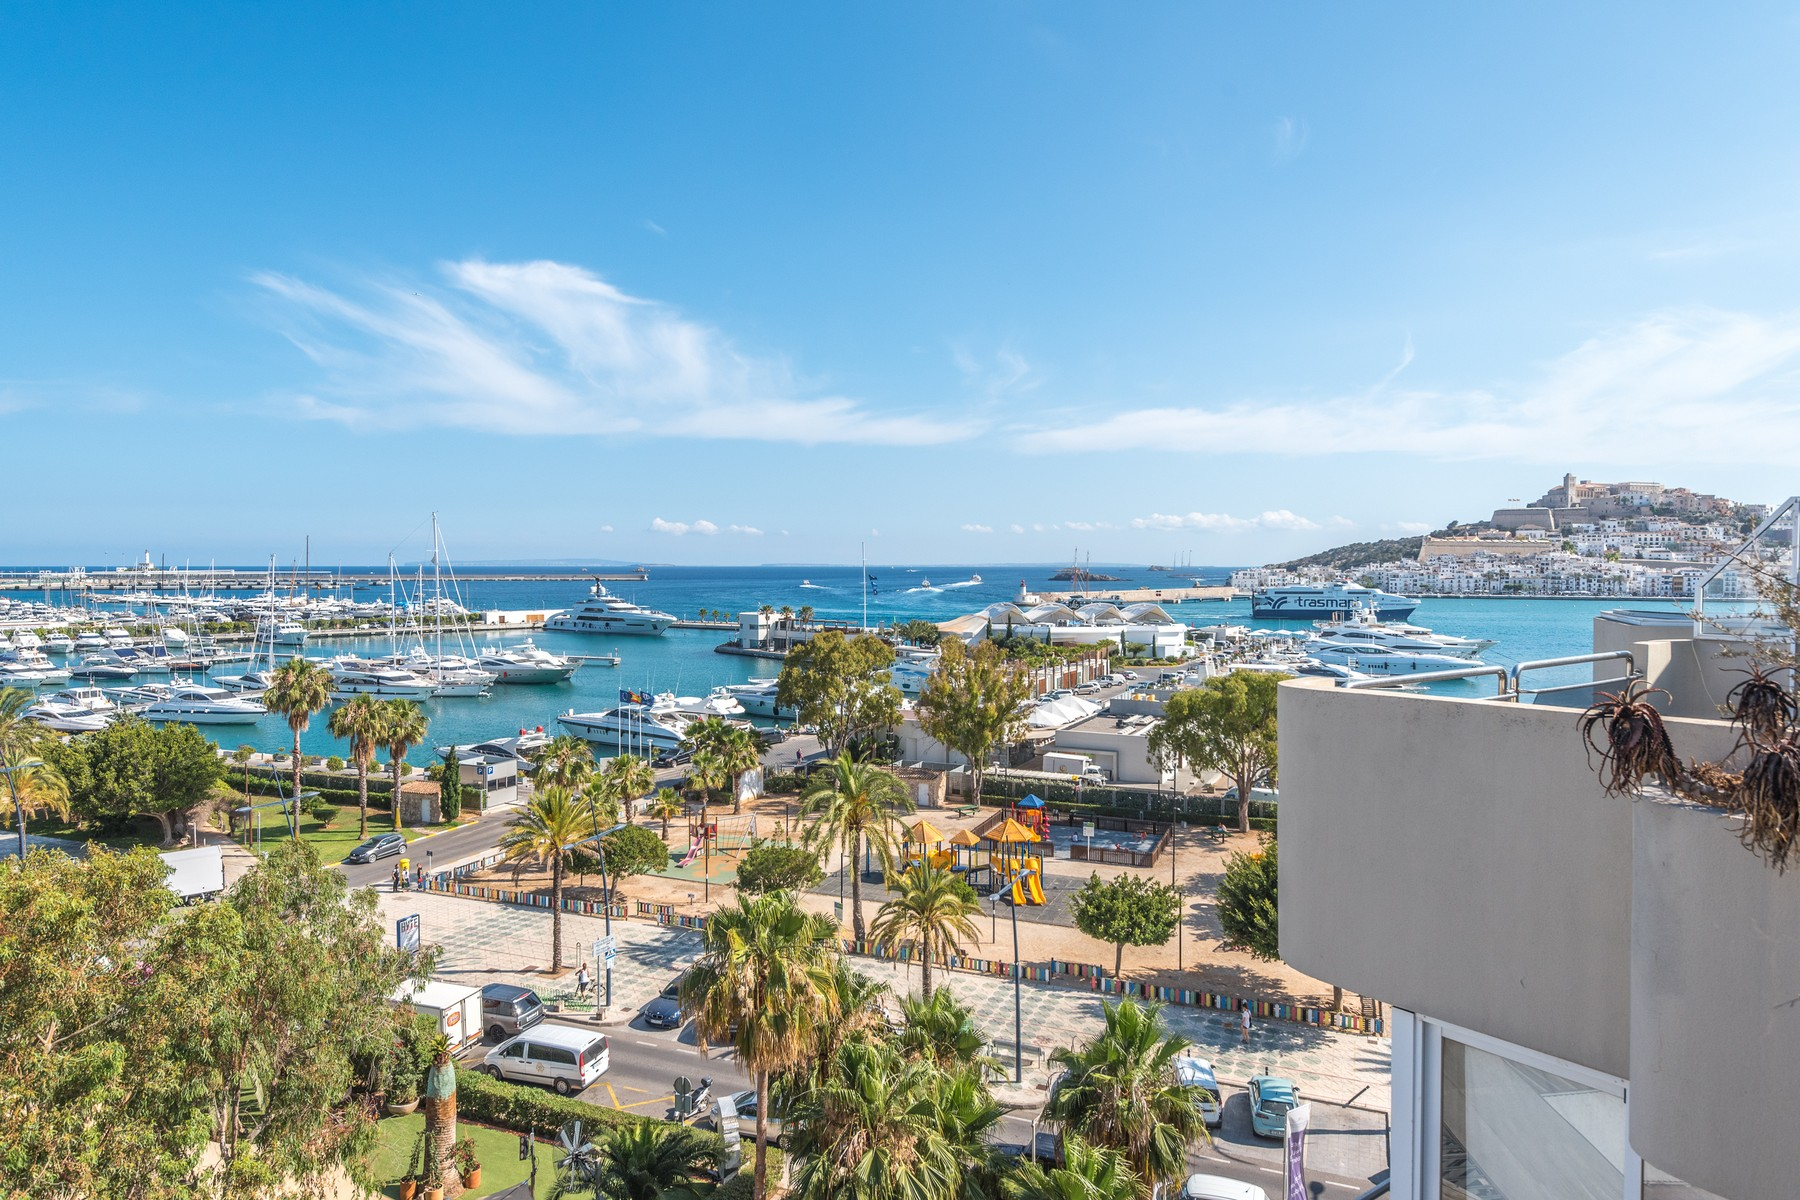 Duplex for Sale at Penthouse Duplex With Fabulous Marina Views Ibiza, Ibiza, 07800 Spain